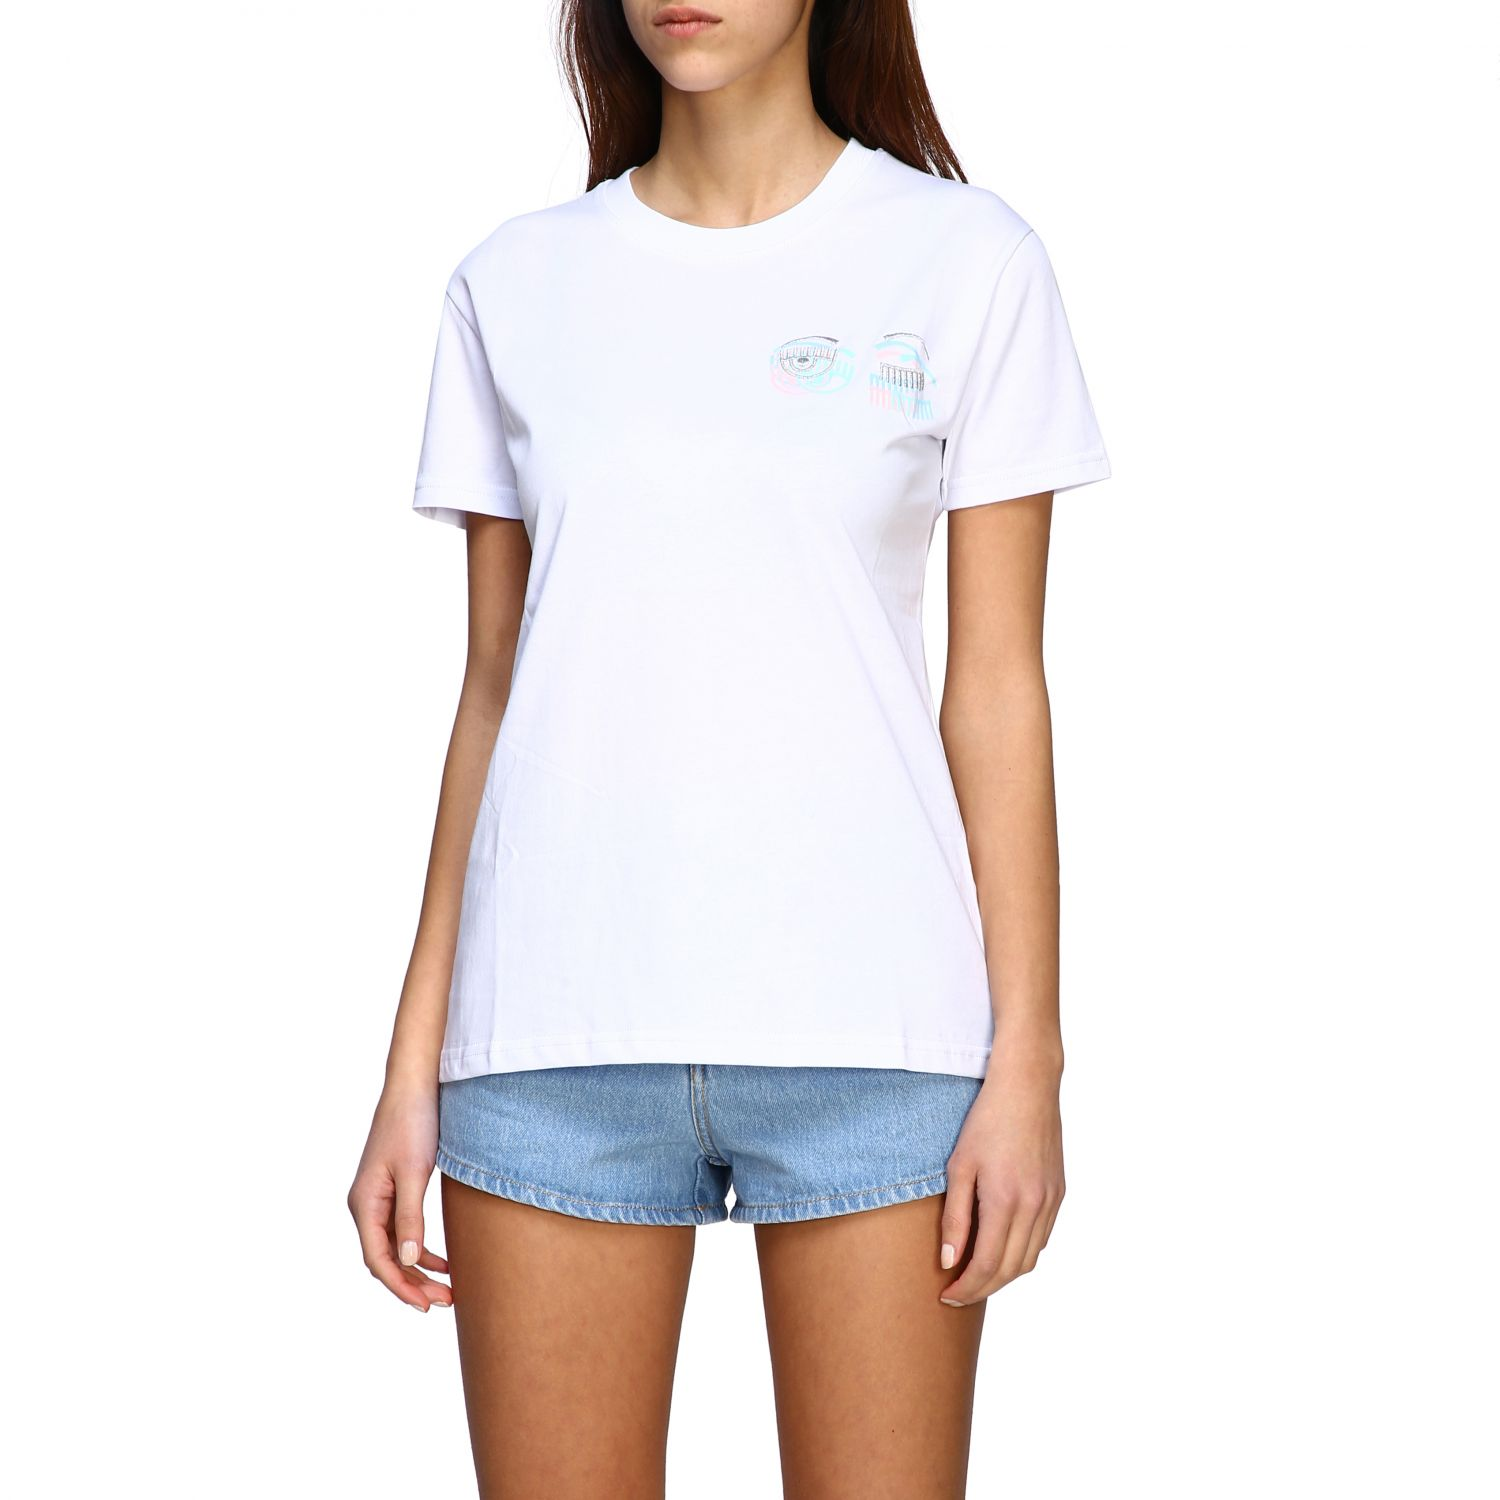 T-shirt women Chiara Ferragni white 4